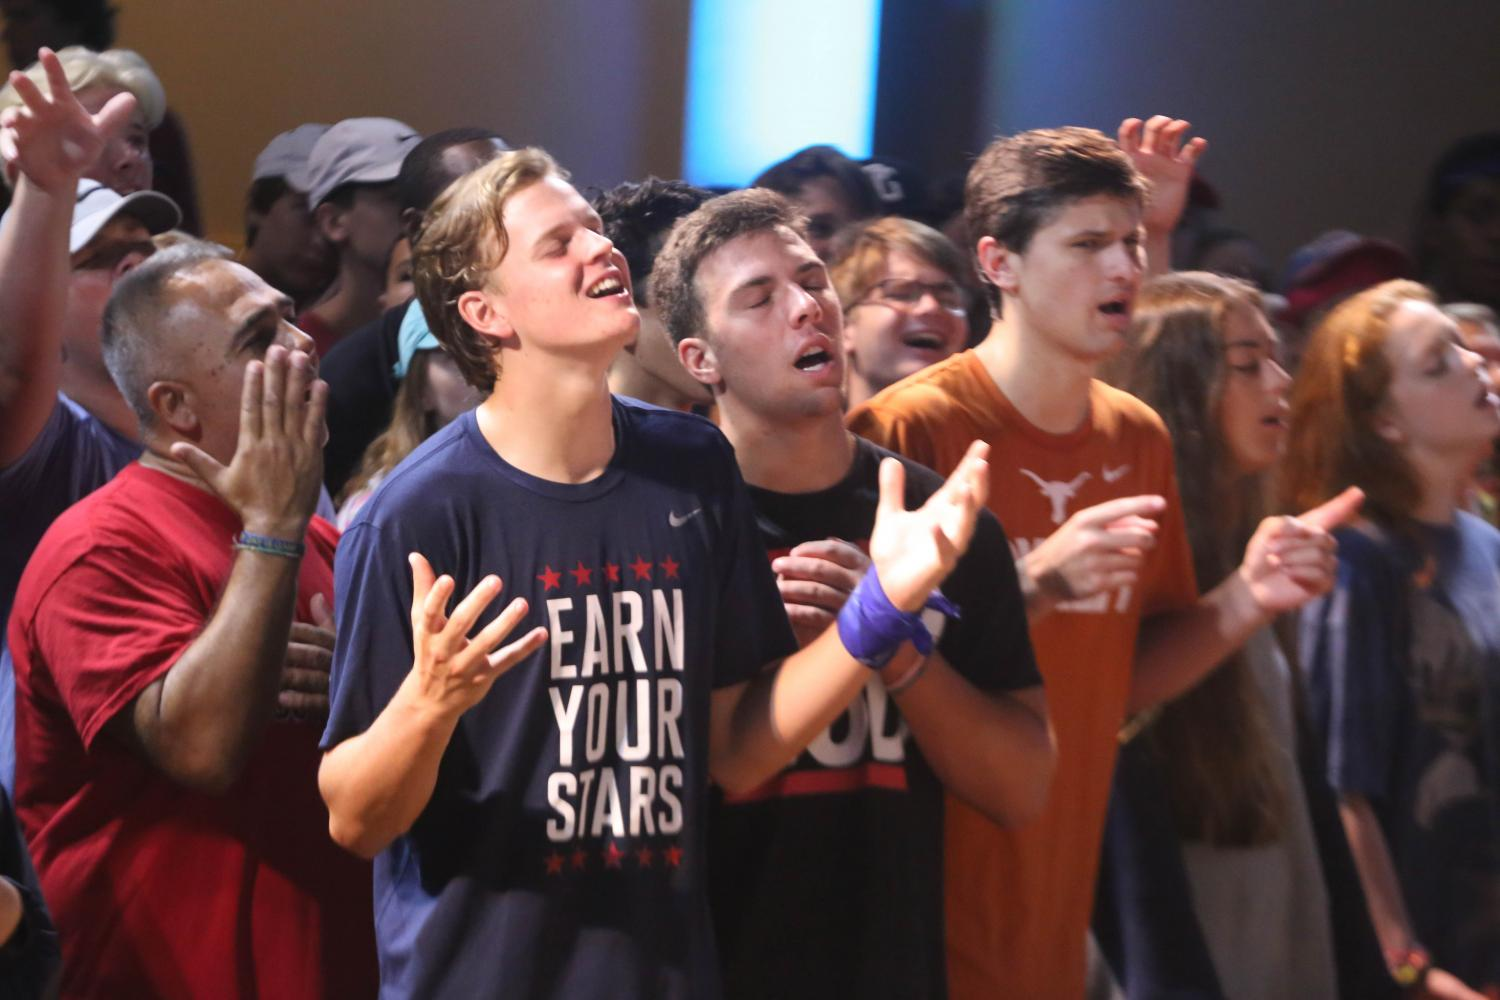 Spanish teacher Mr. Jody Garcia and Seniors Wiley Green, Sam Boese and Preston Panetti  worship with the JWood Band to focus their hearts and minds before Pastor Rob Wilton's message from Ephesians. He urged students to be ready before the battles come by utilizing the whole armor of God.